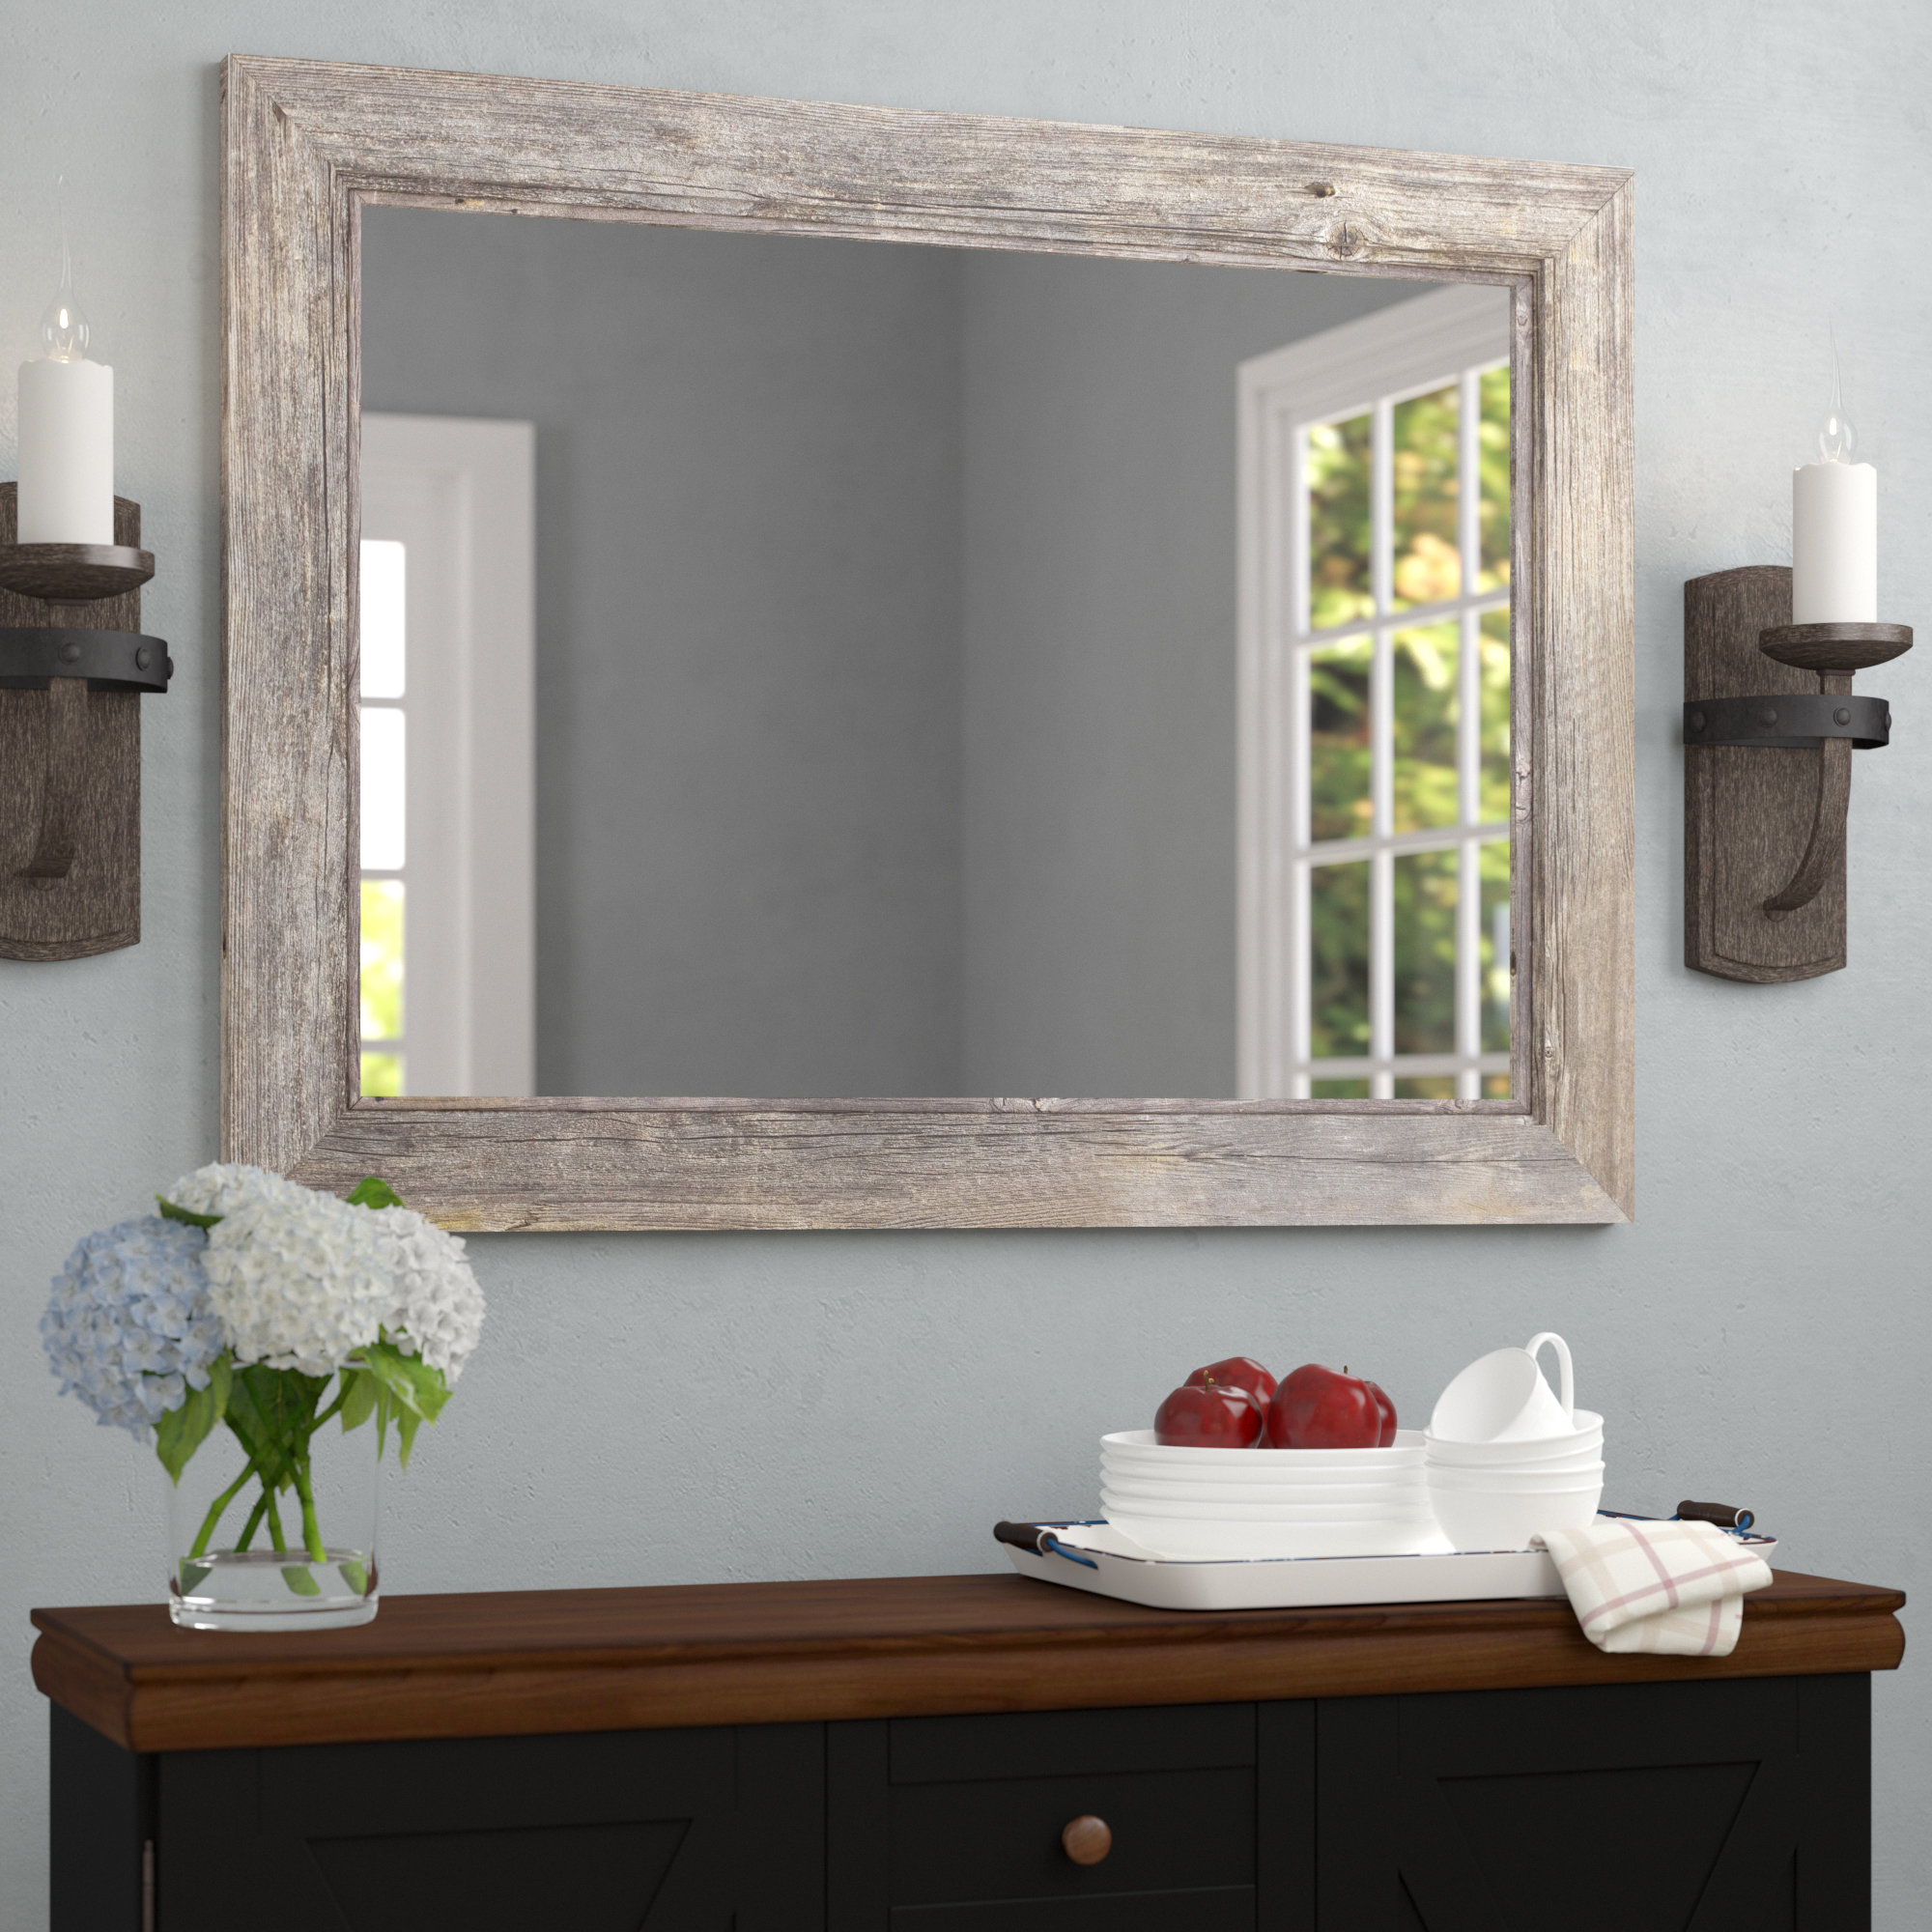 Traditional Beveled Accent Mirror with regard to Longwood Rustic Beveled Accent Mirrors (Image 24 of 30)